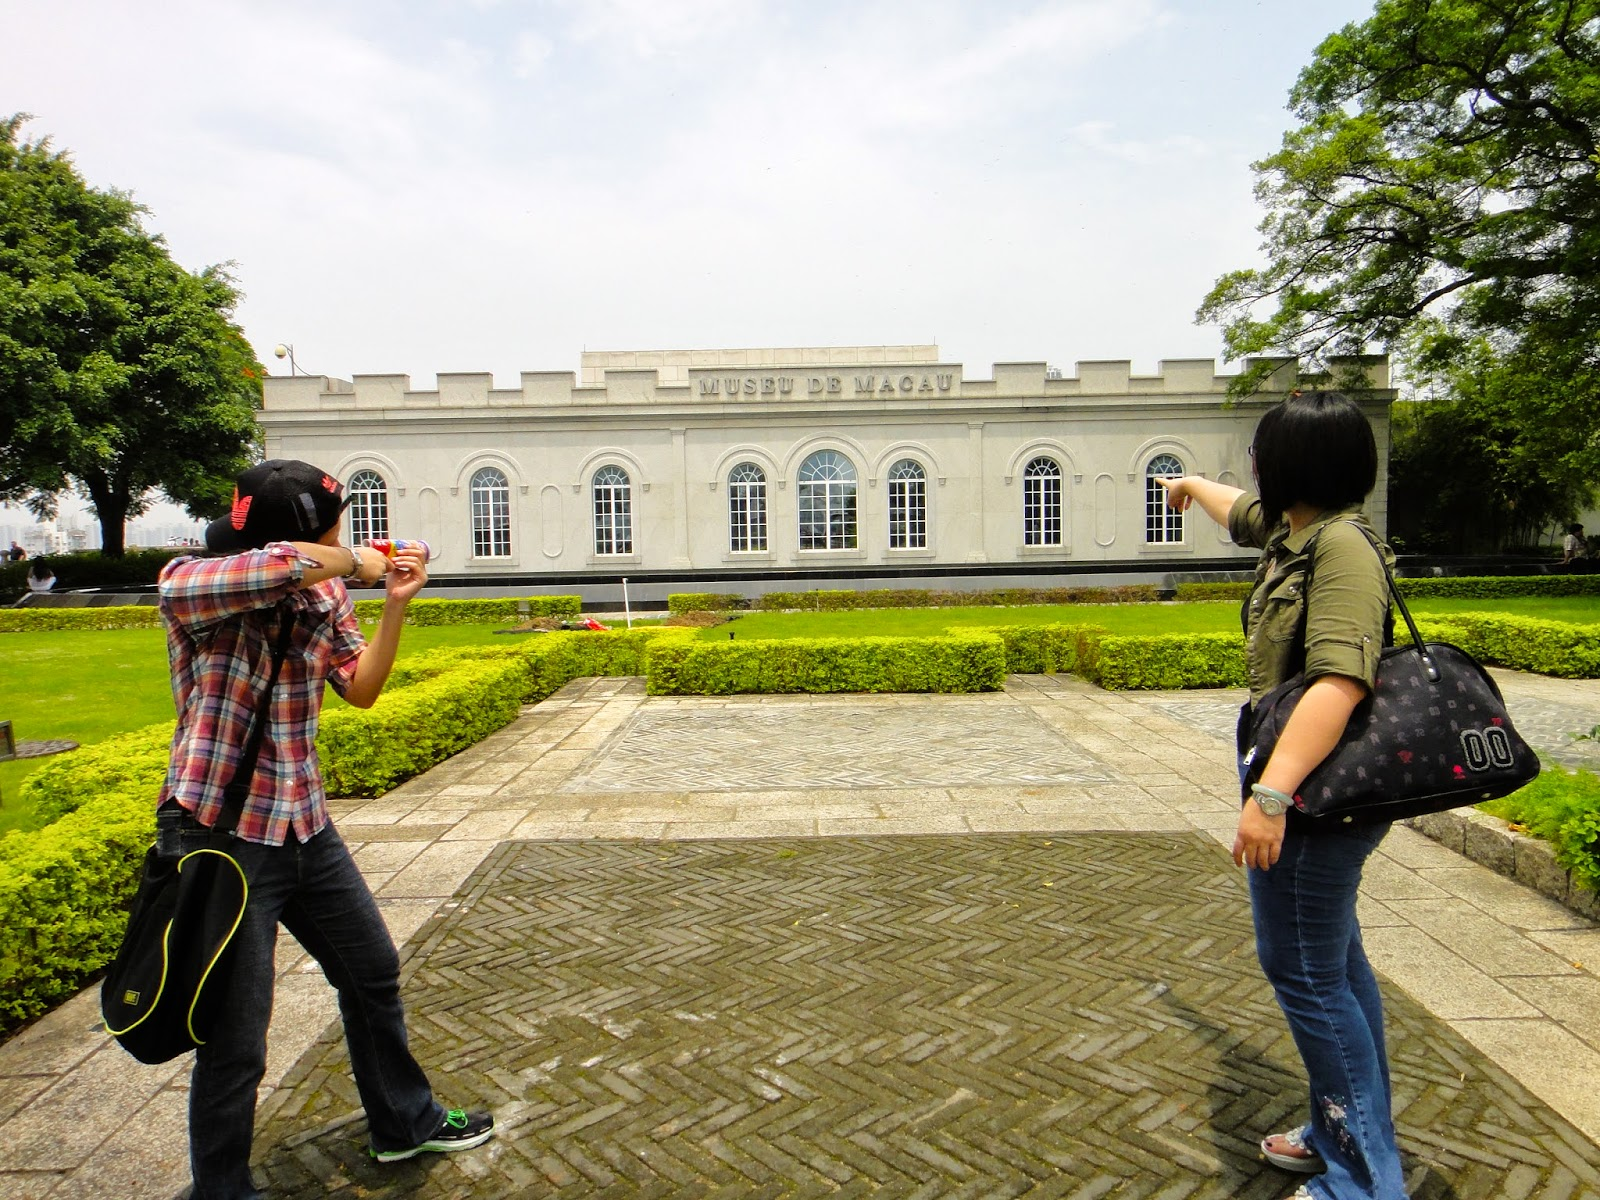 Travel to Monte Fort Macau